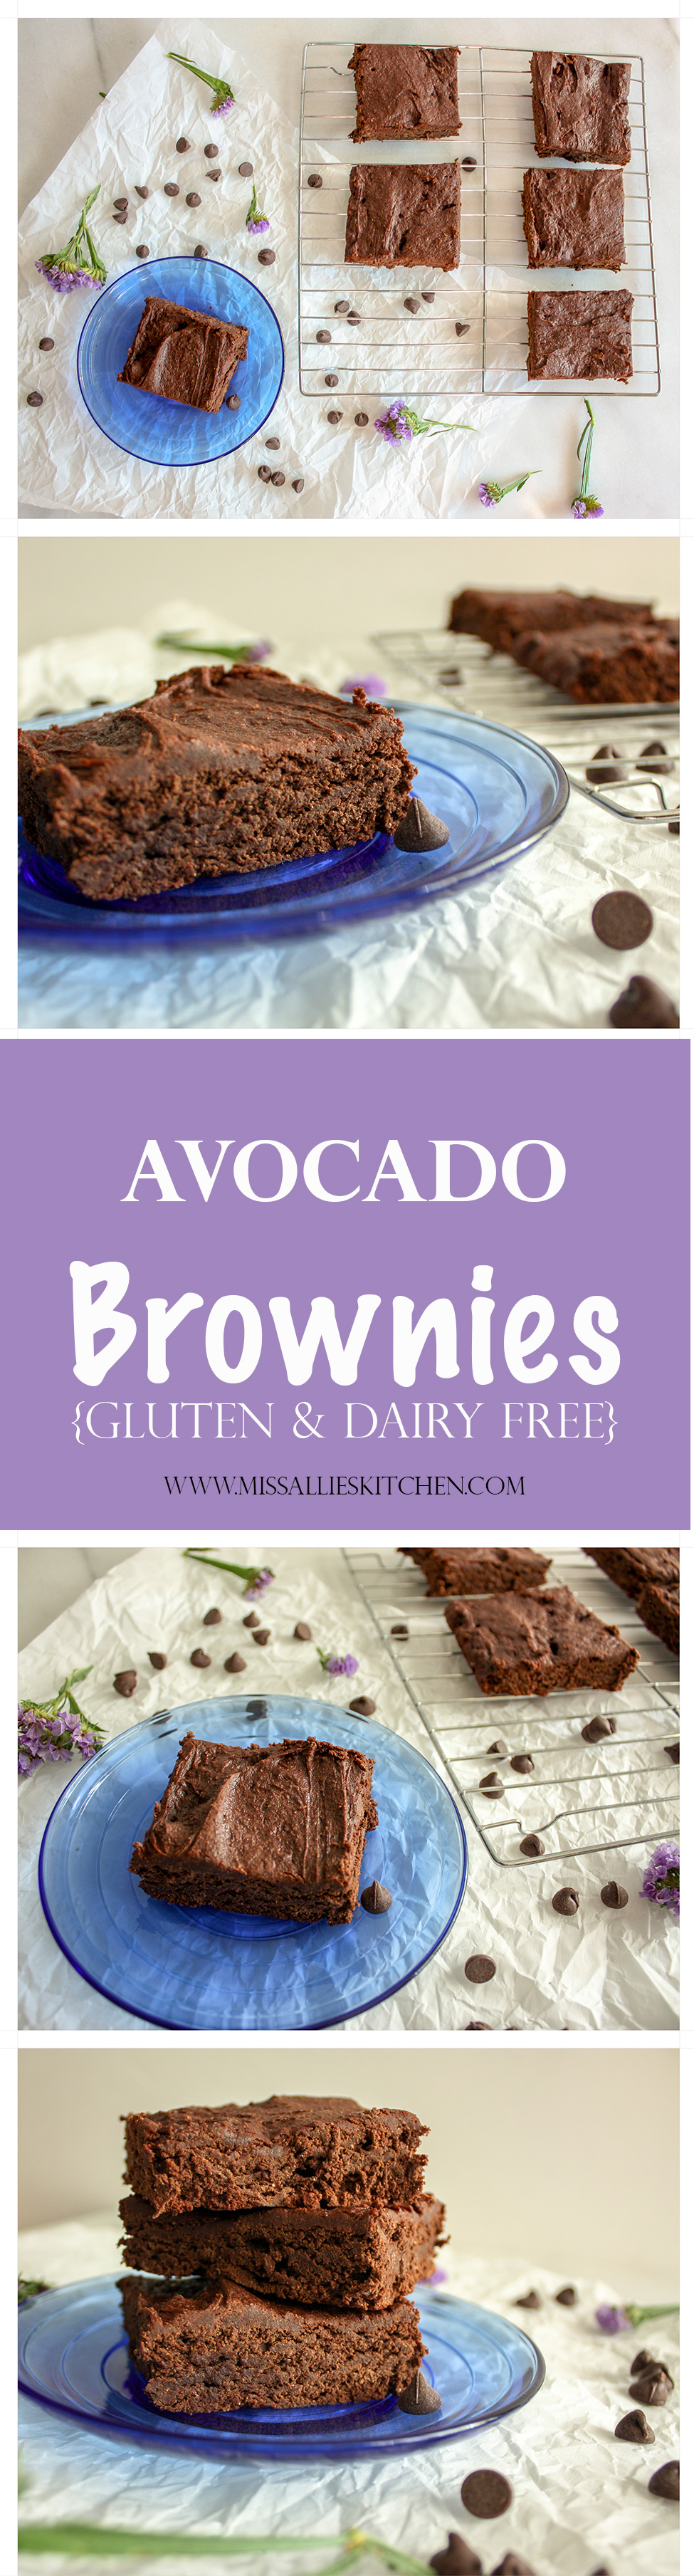 Avocado Brownie Recipe